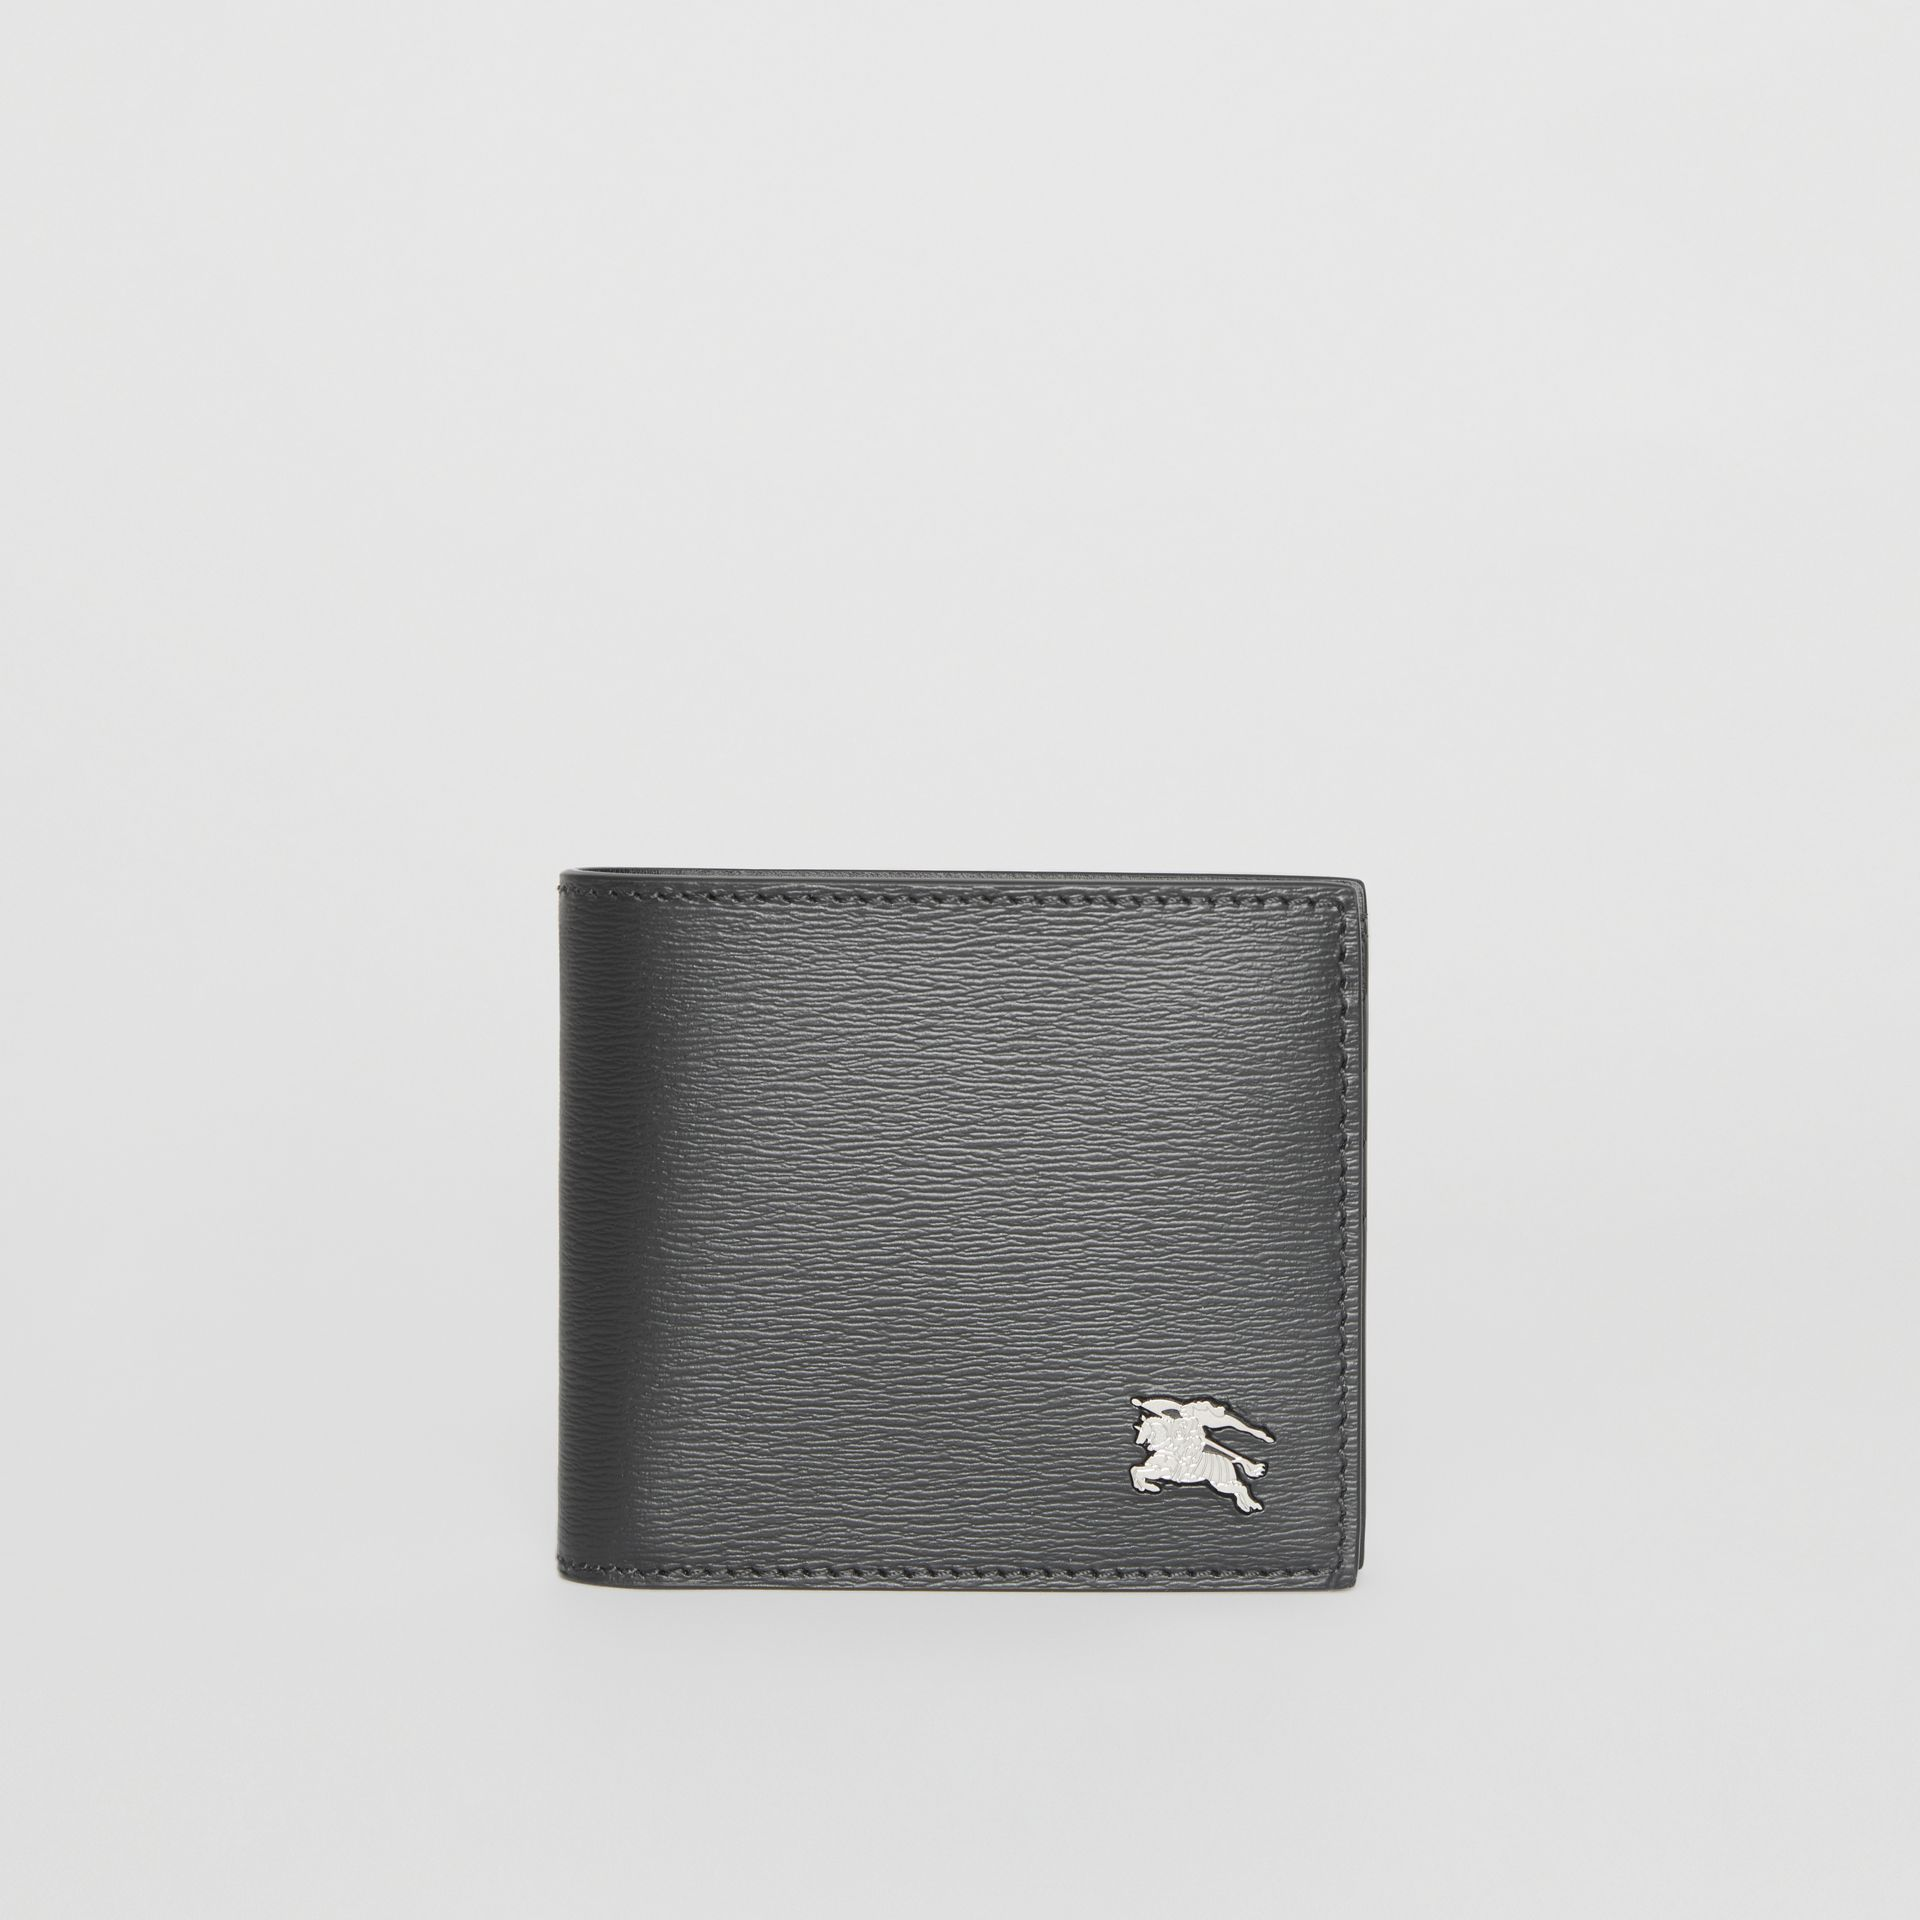 EKD London Leather Bifold Wallet with ID Card Case in Black - Men | Burberry - gallery image 2